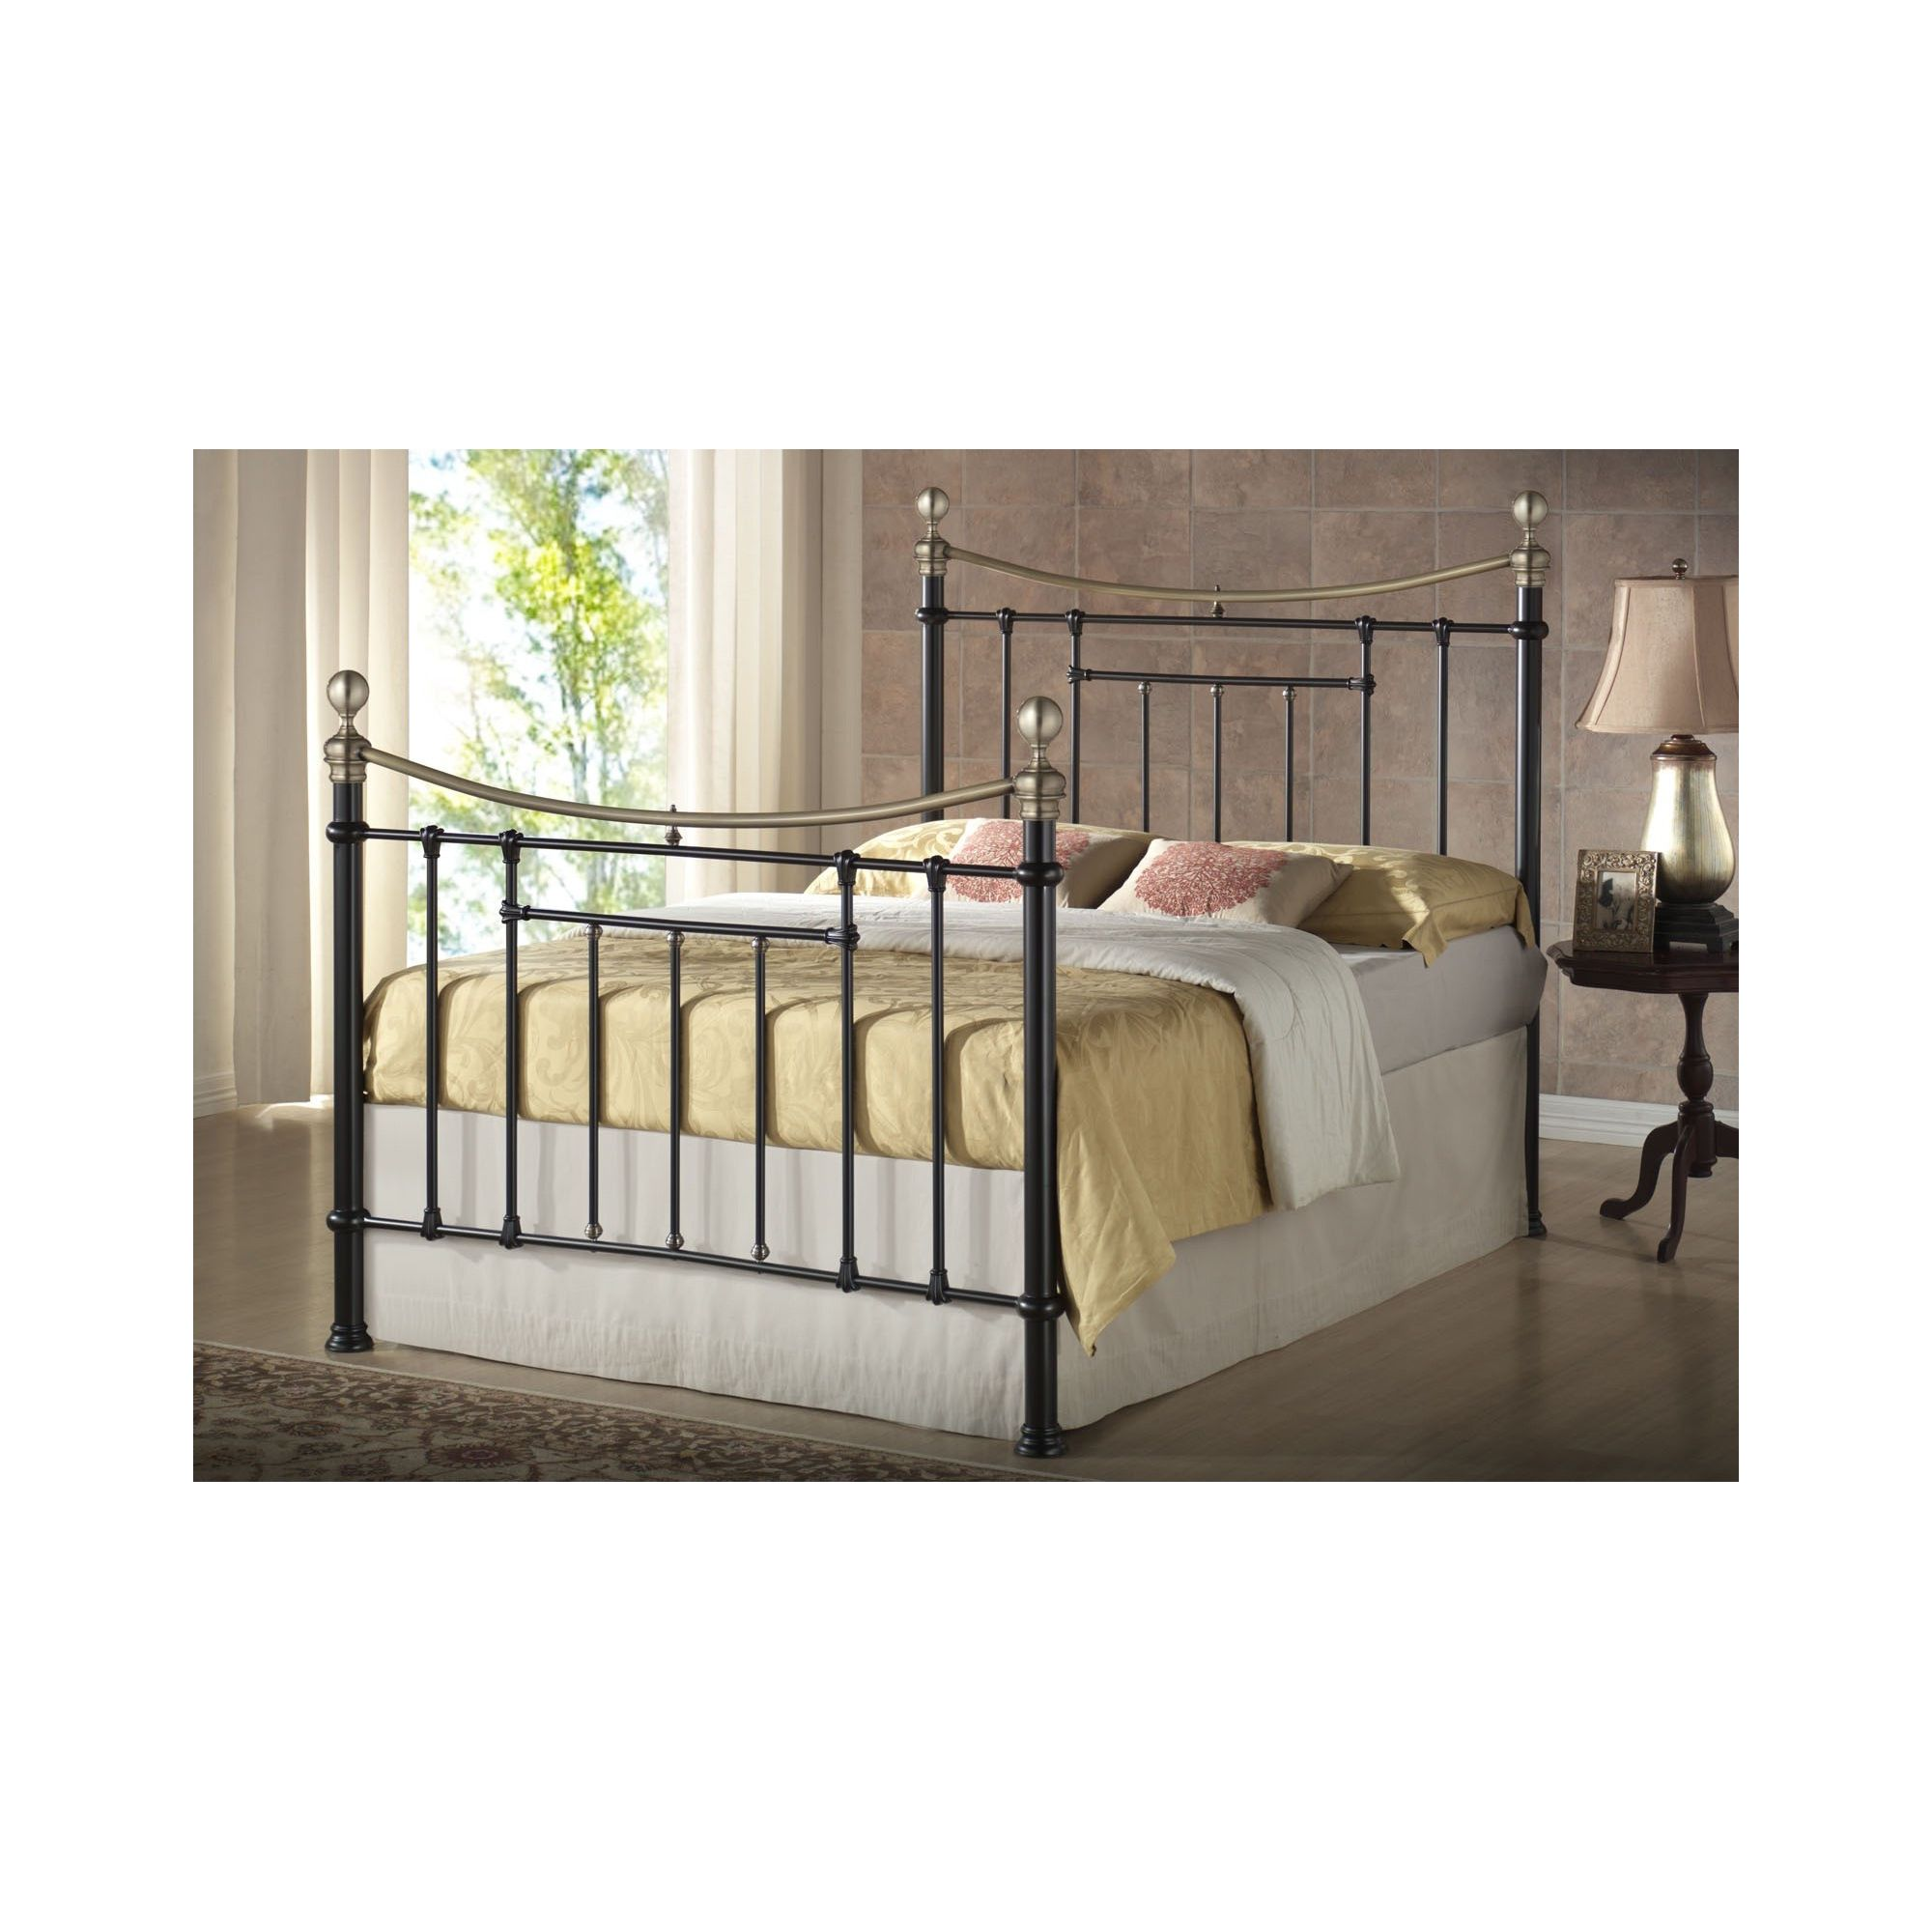 Birlea Bronte Metal Bed Frame - Double - Black at Tesco Direct